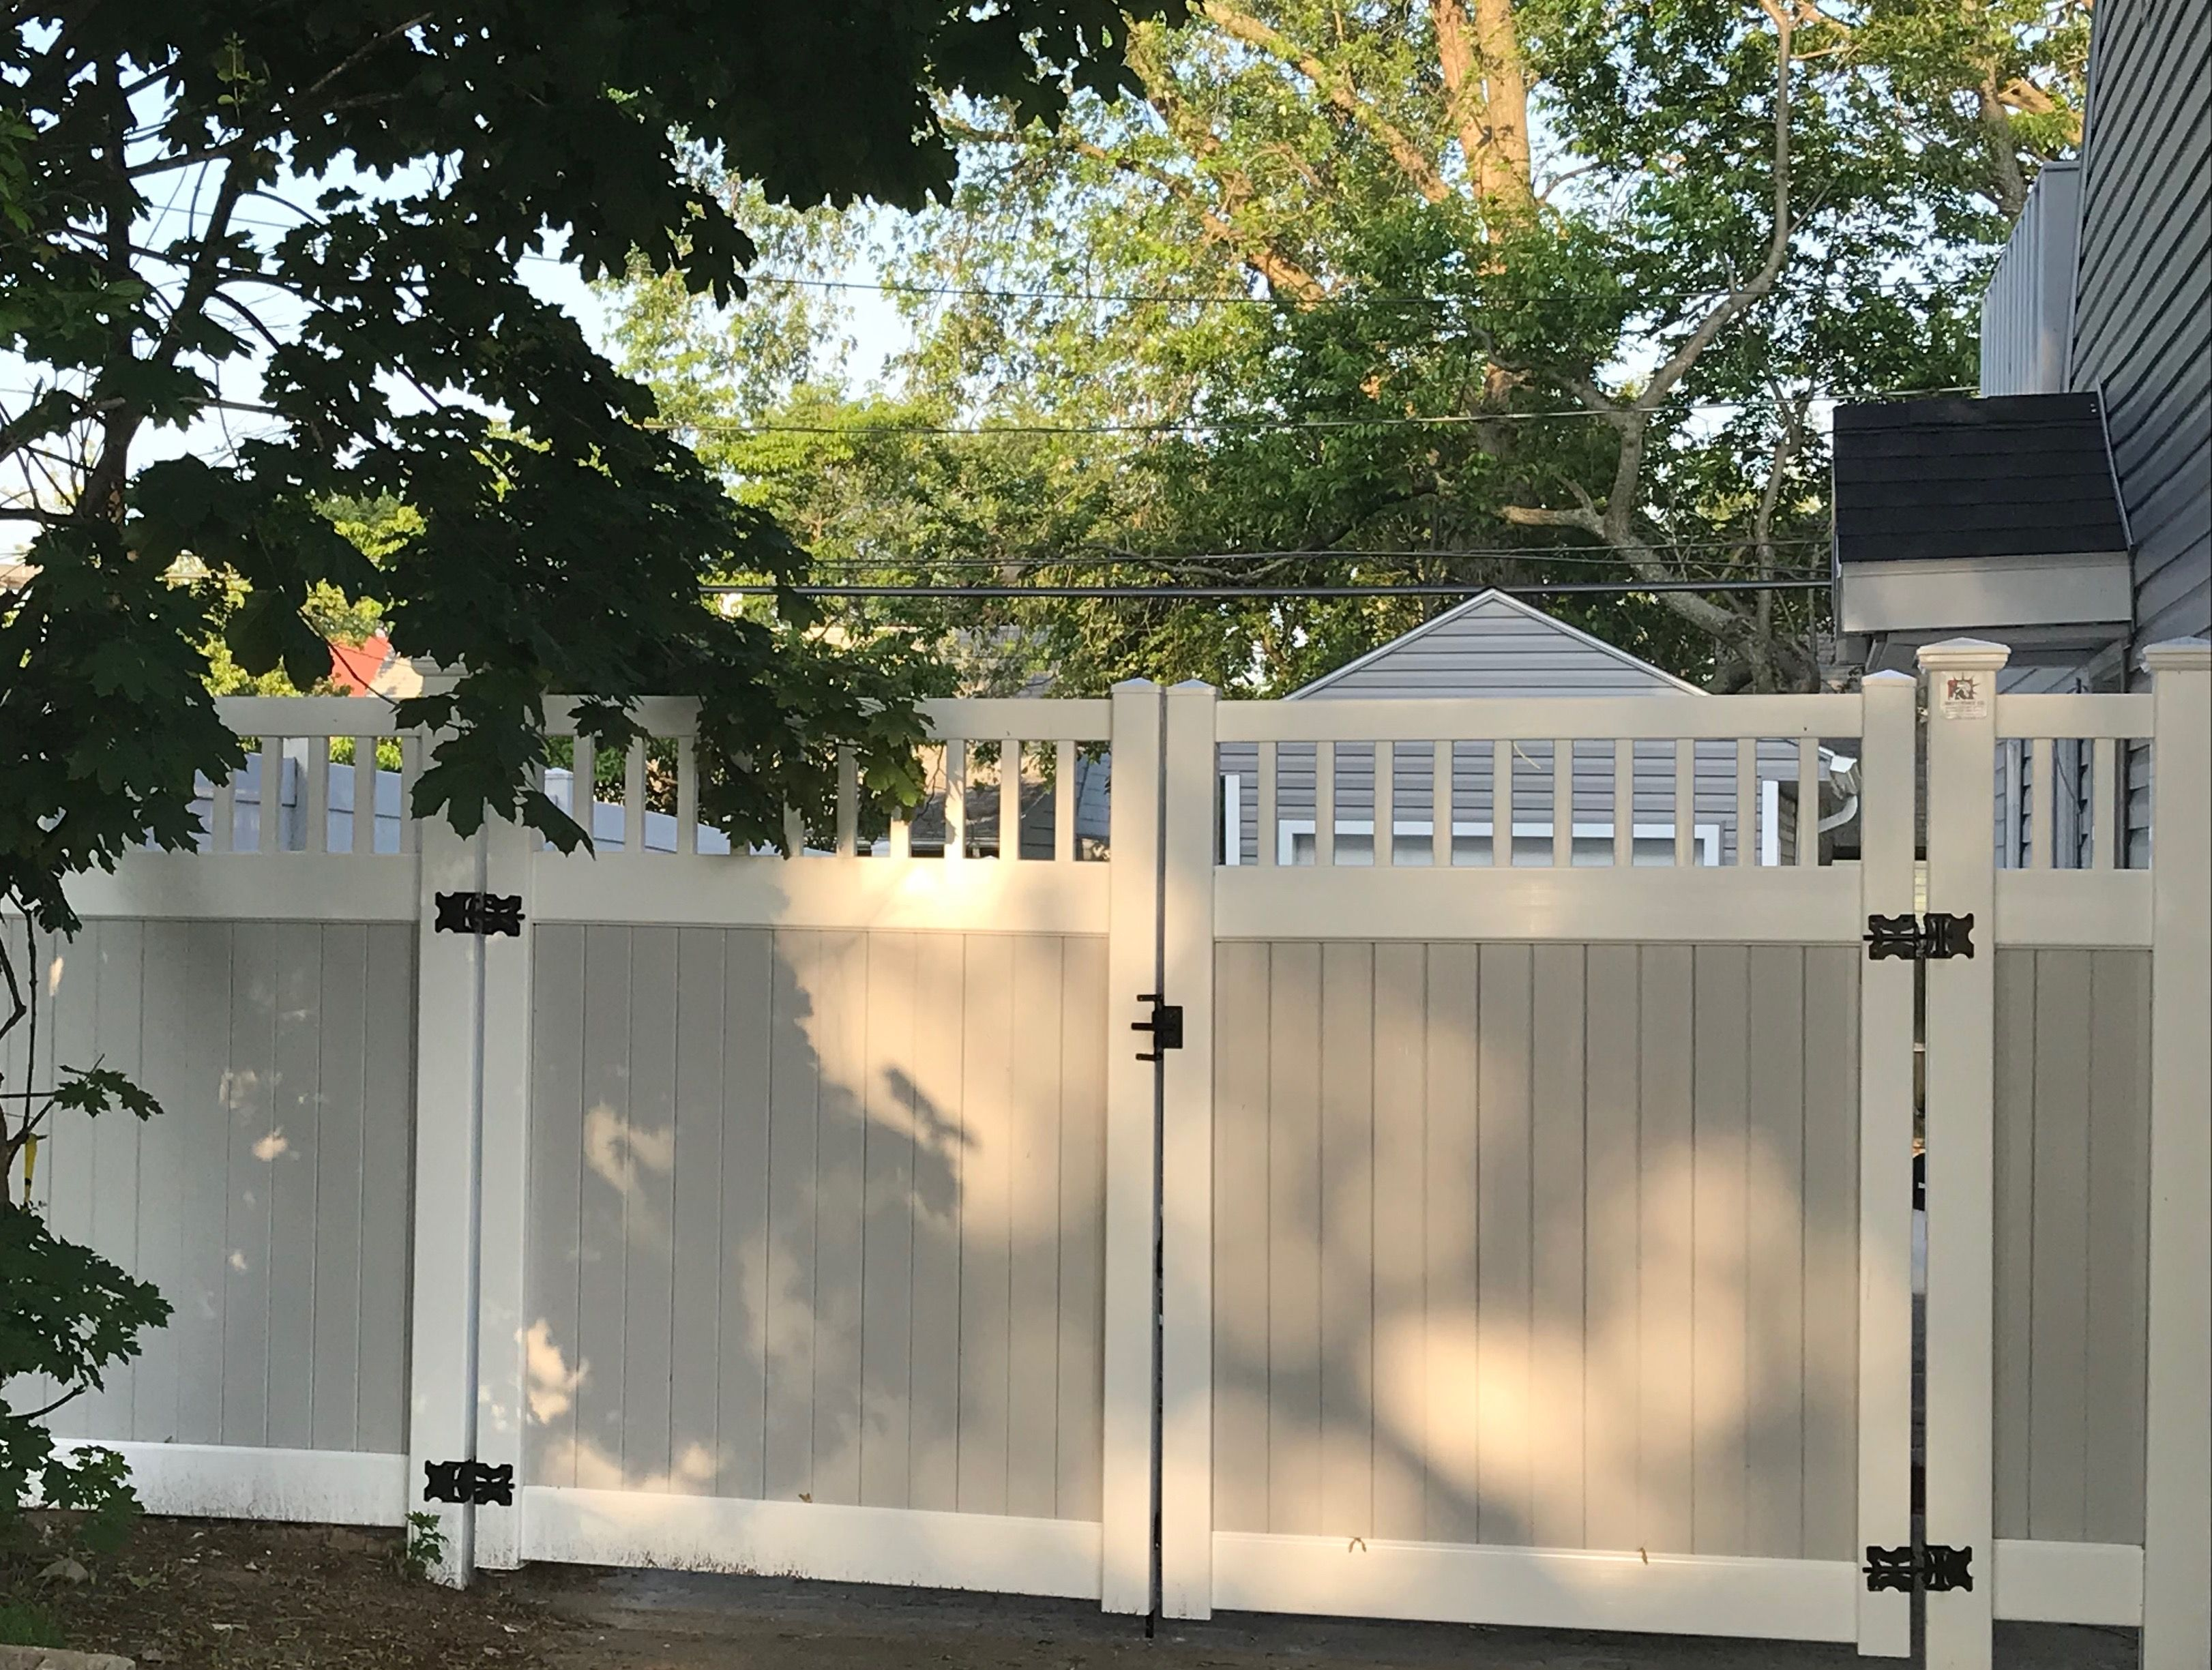 72 Grey White Two Tone Pvc Fence Double Driveway Classic Picket Top Gates Backyard Fences Backyard Vinyl Privacy Fence